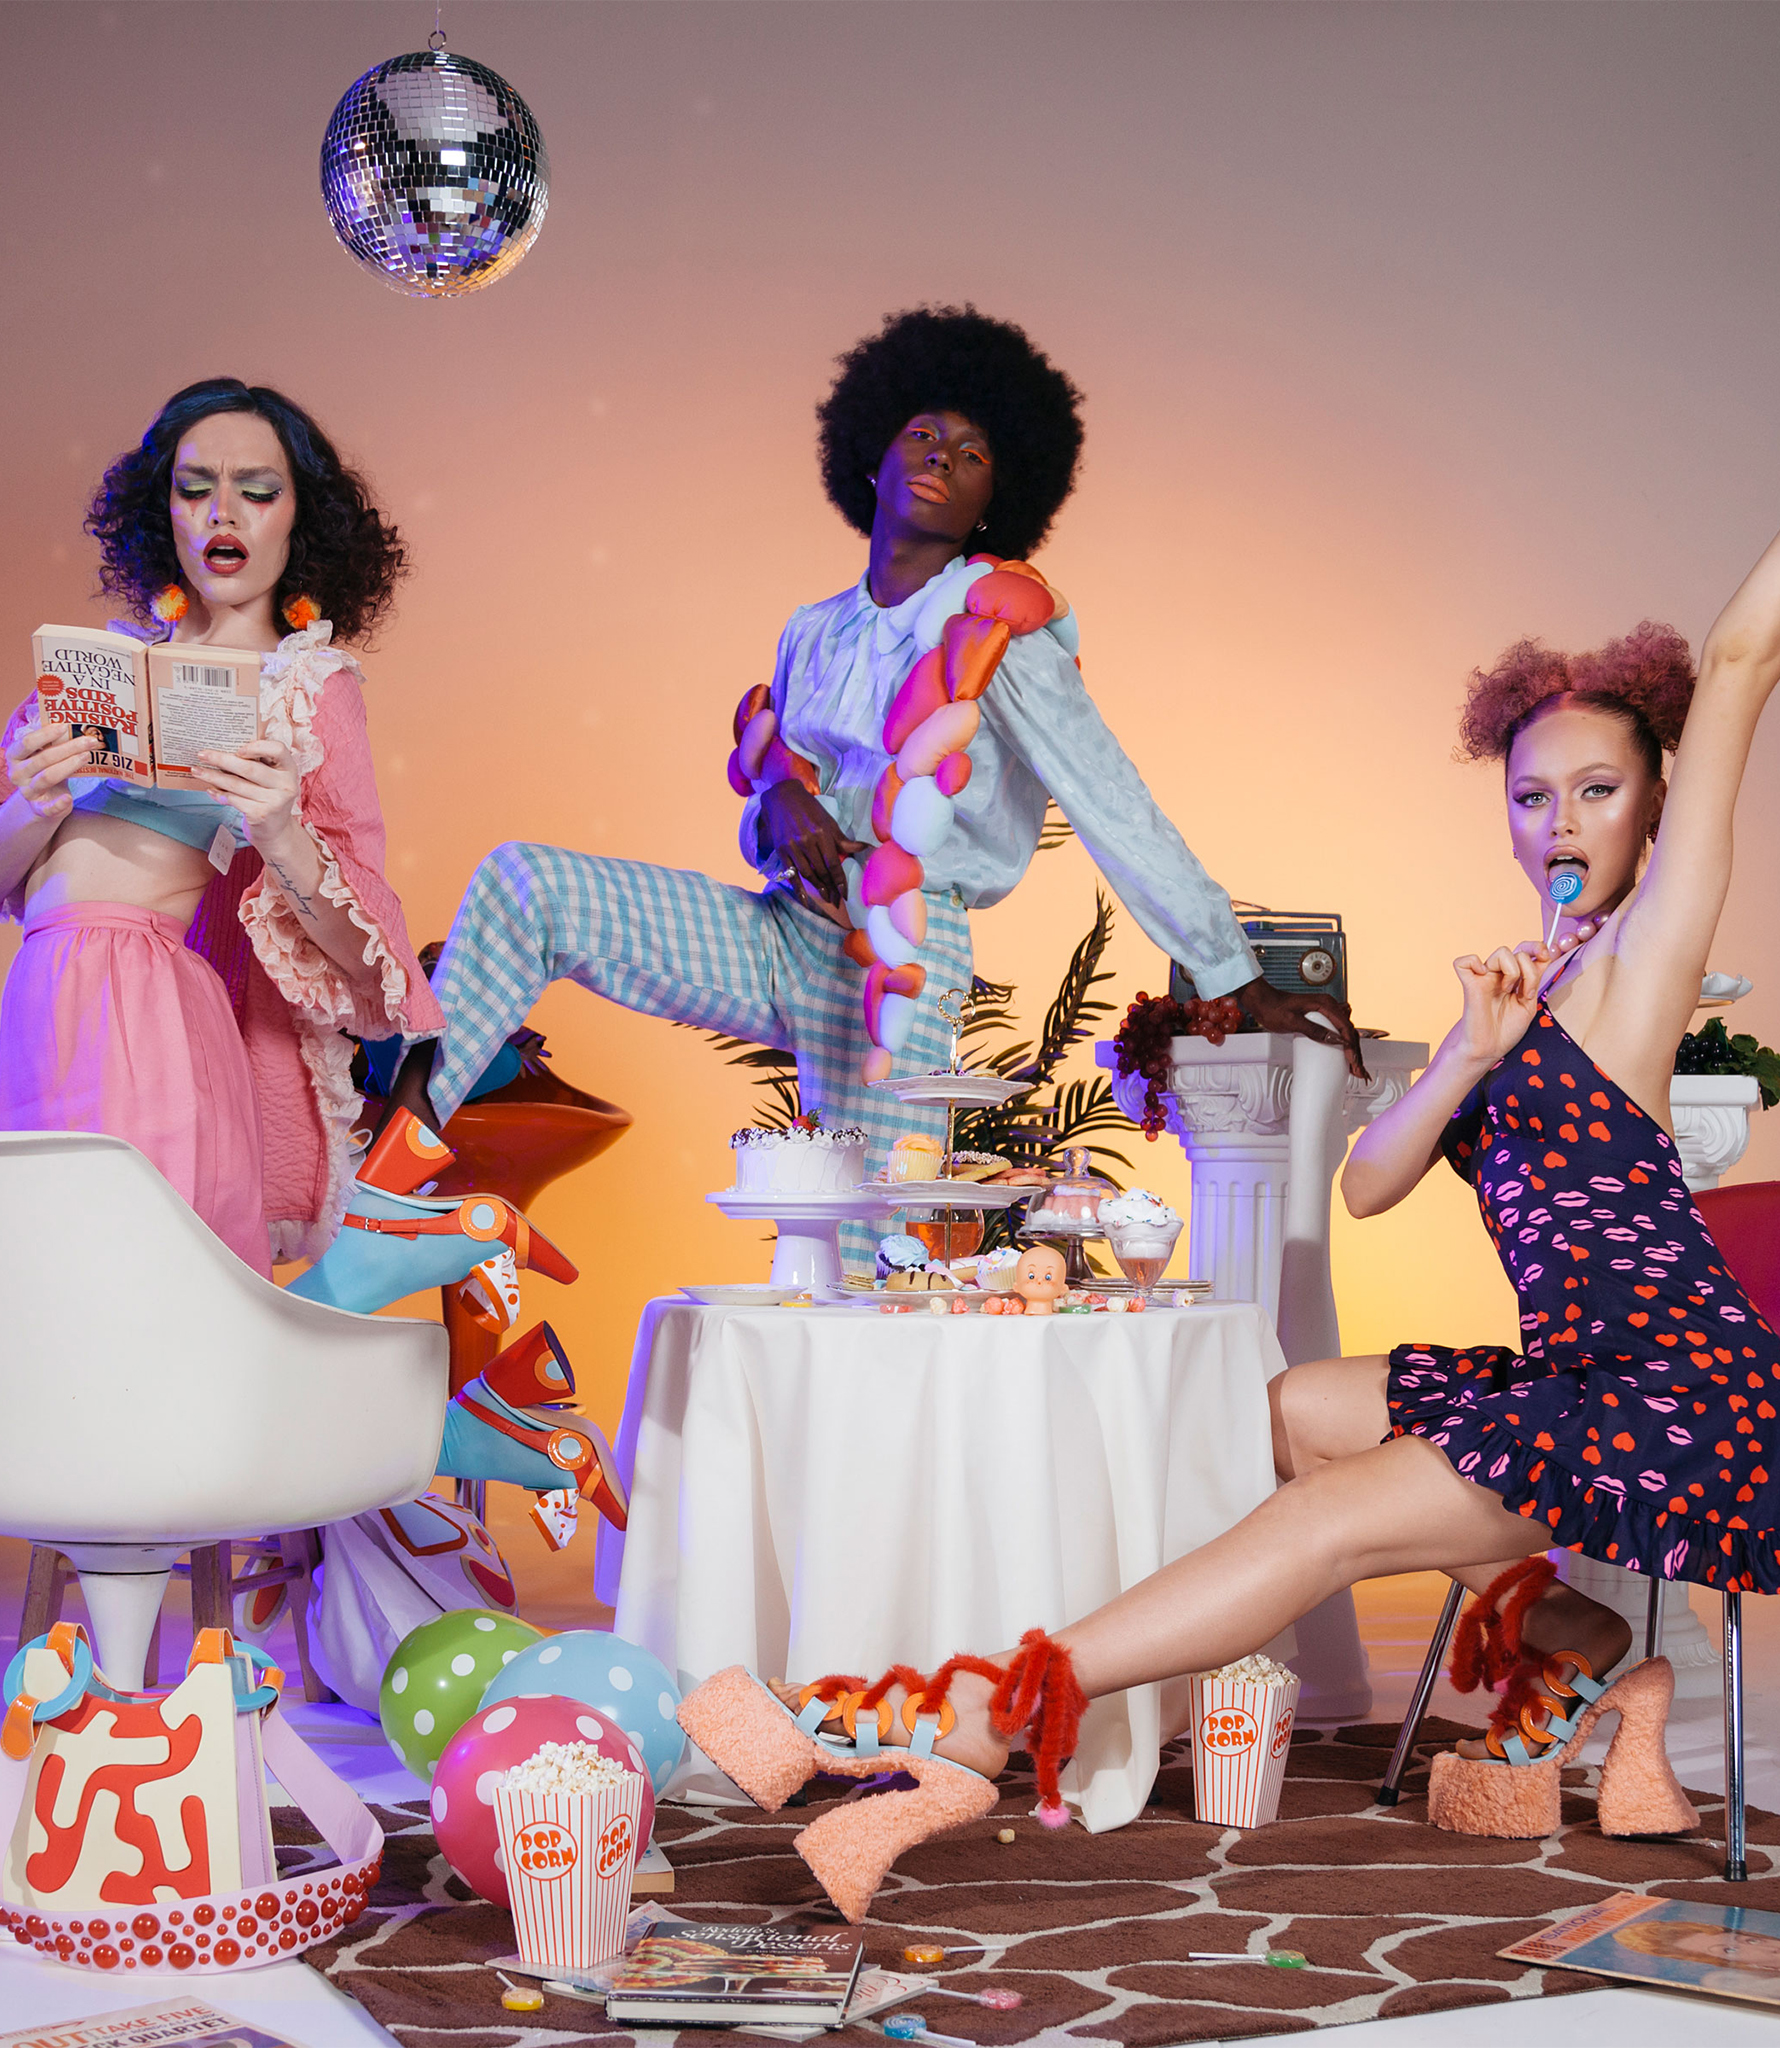 Models posing at a party with cakes and a disco ball